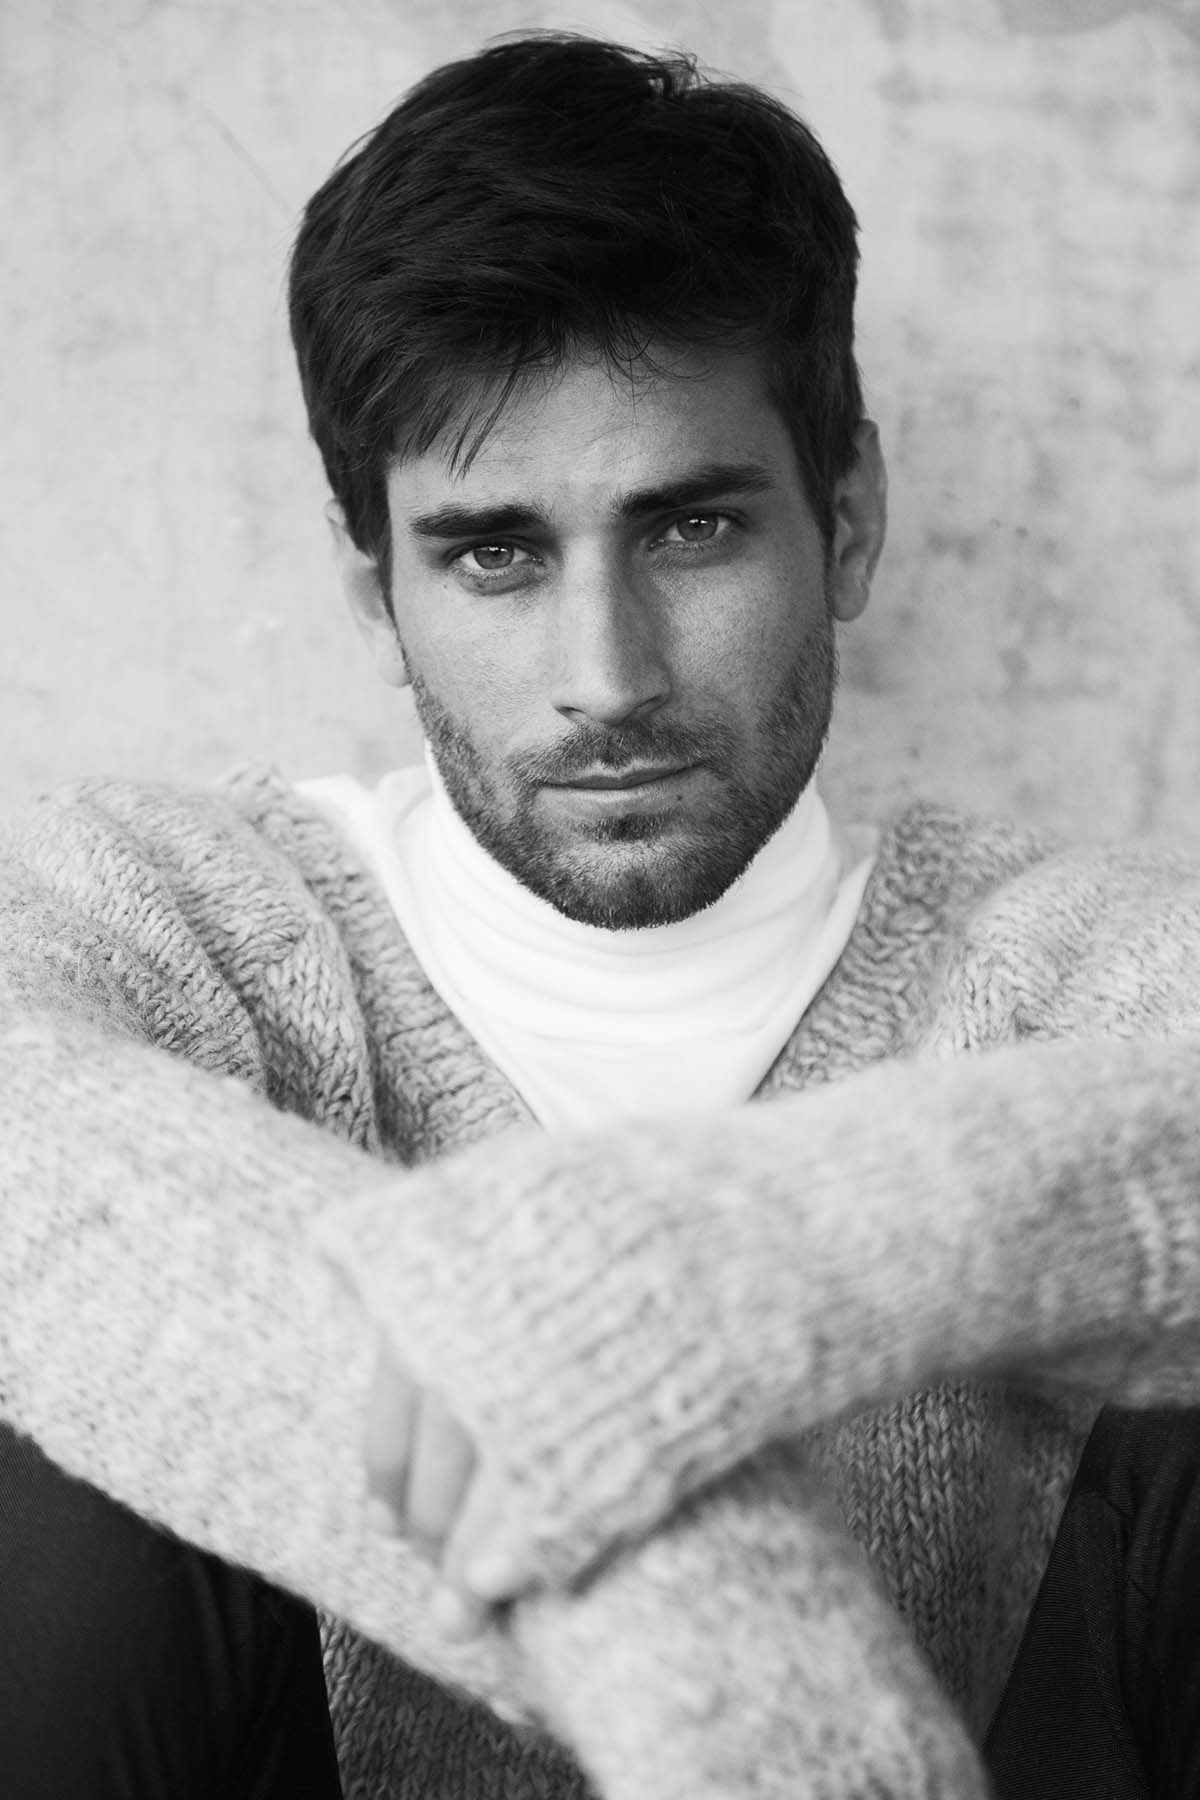 Victor Muller by Moises Leal